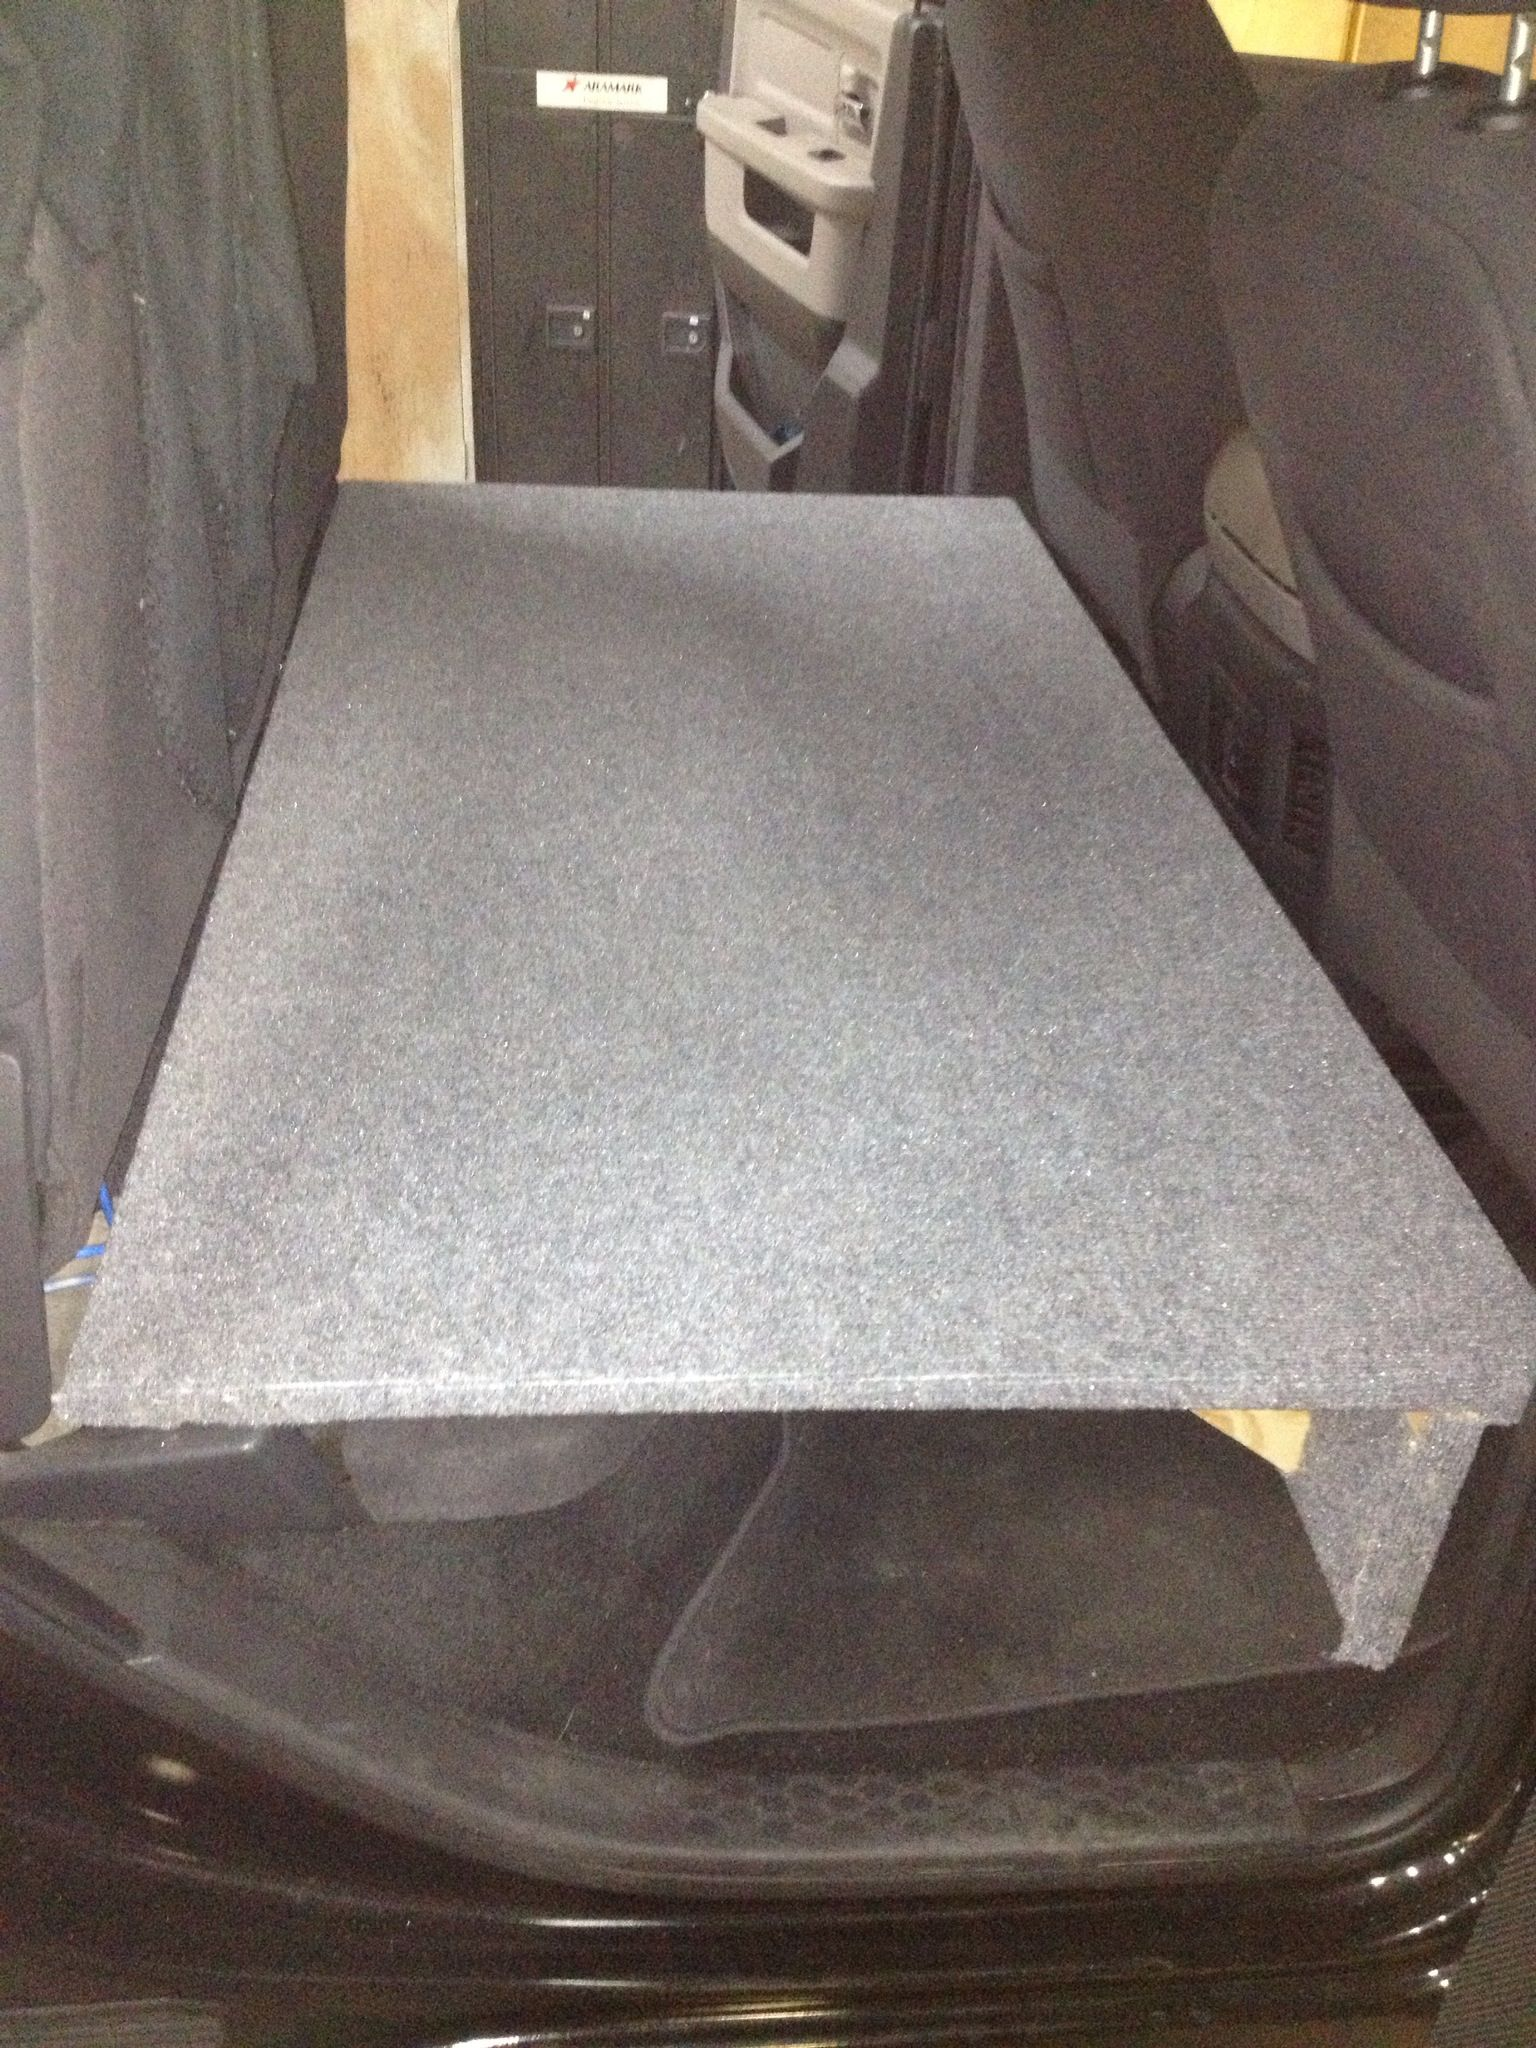 Dog Seat Bed In Back Of Truck Rear Seats Folded Up And